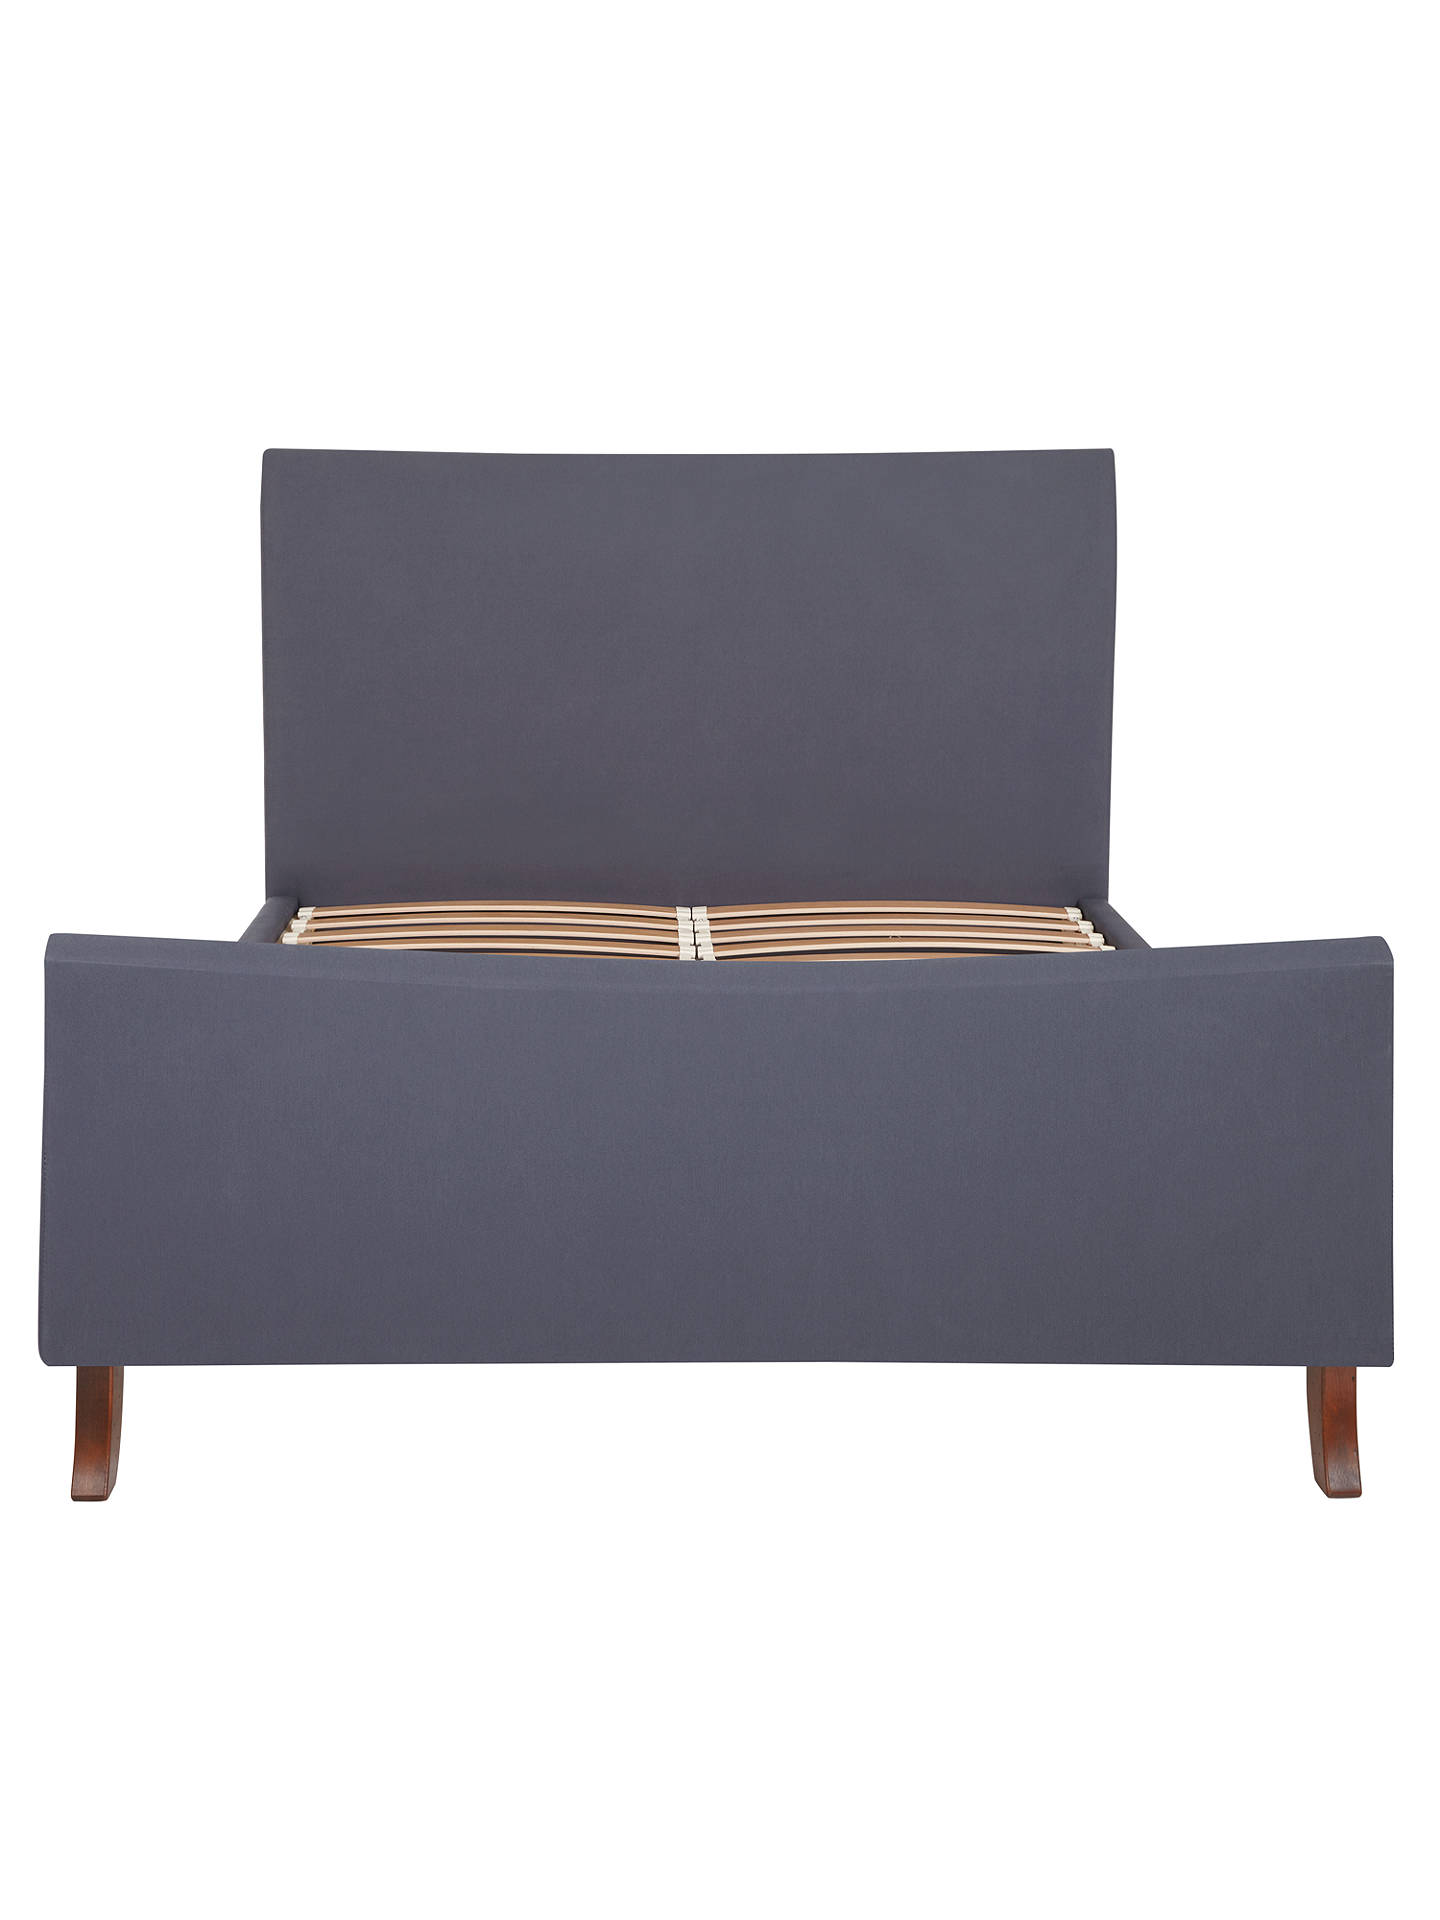 BuyJohn Lewis & Partners Lincoln High End Bed Frame, Double, Anthracite Online at johnlewis.com